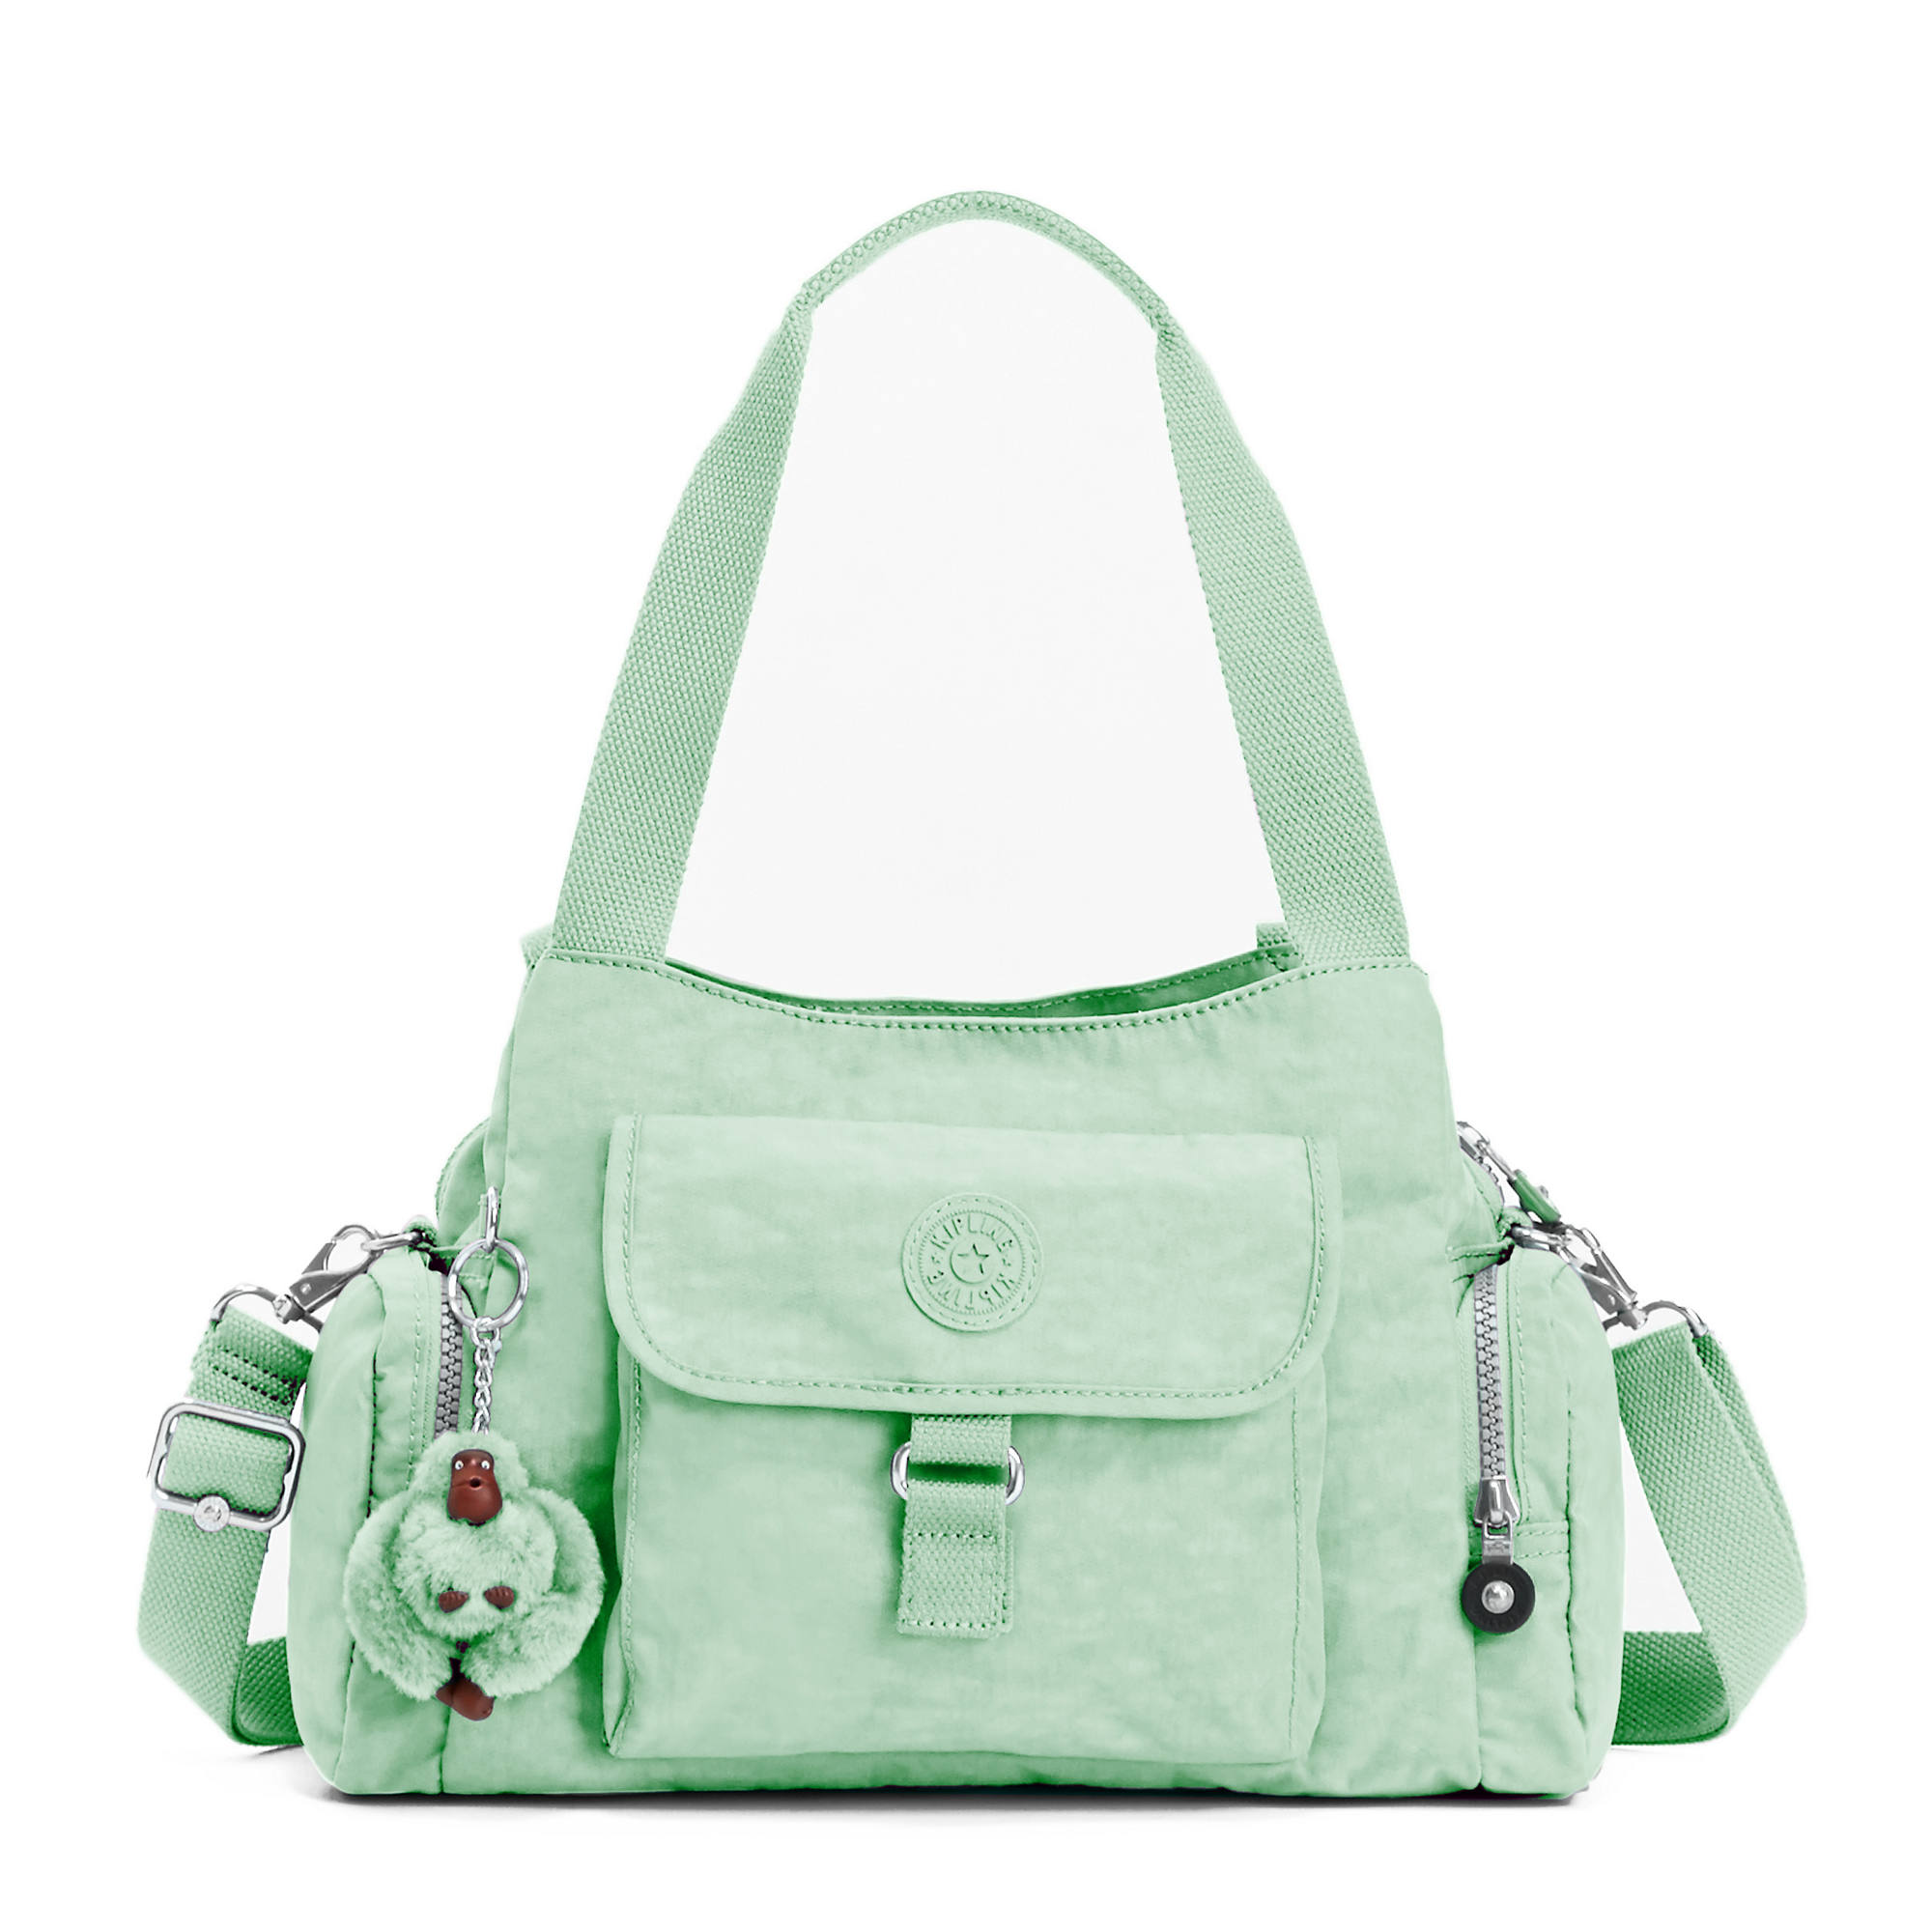 Felix Large Handbag,Greenery,large e0f0fd2cc2